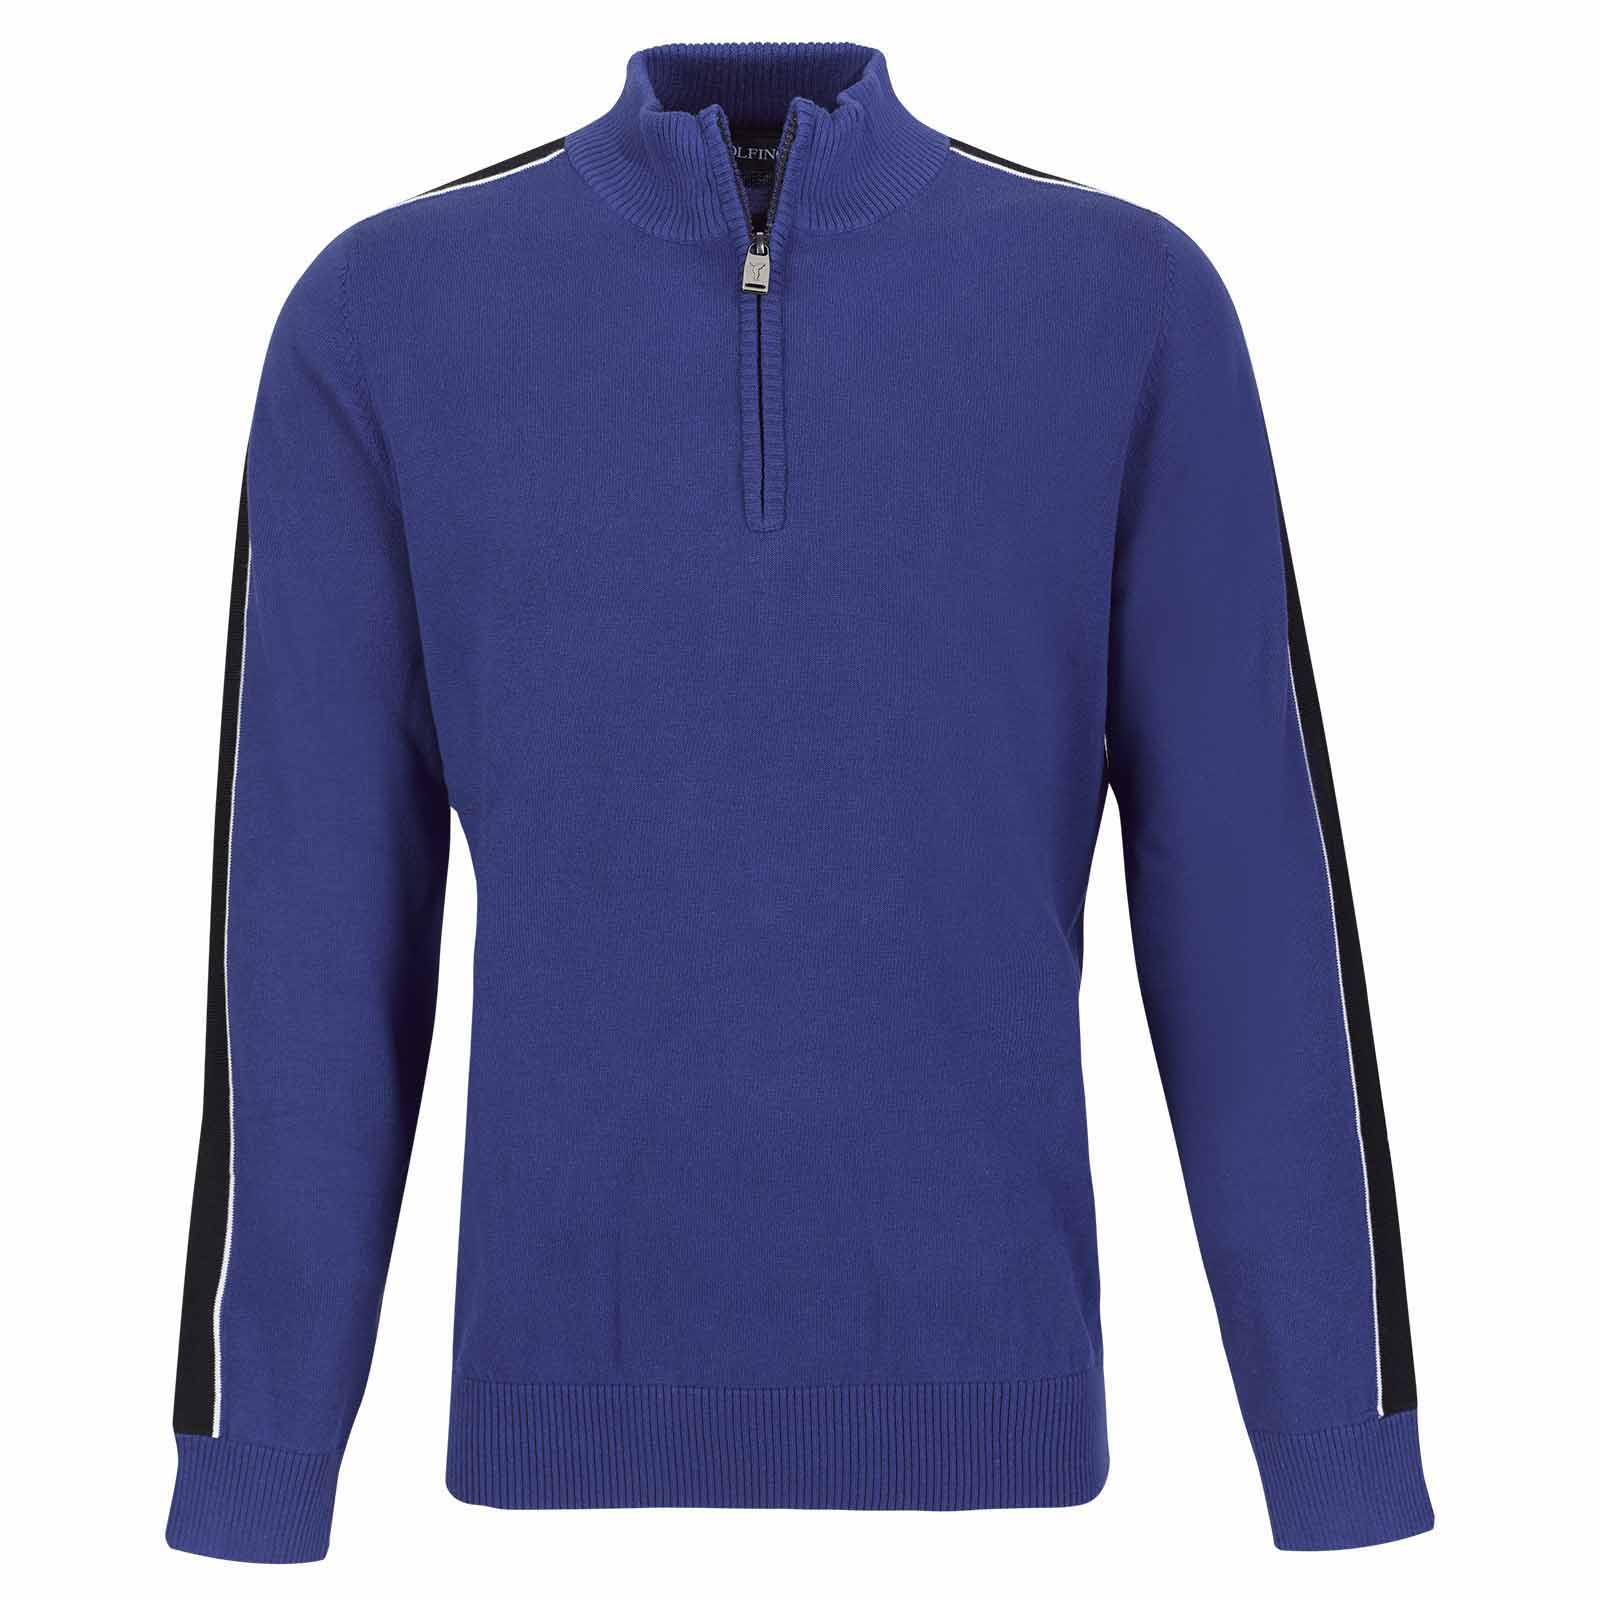 Herren Strickpullover aus super weicher Baumwolle in Regular Fit